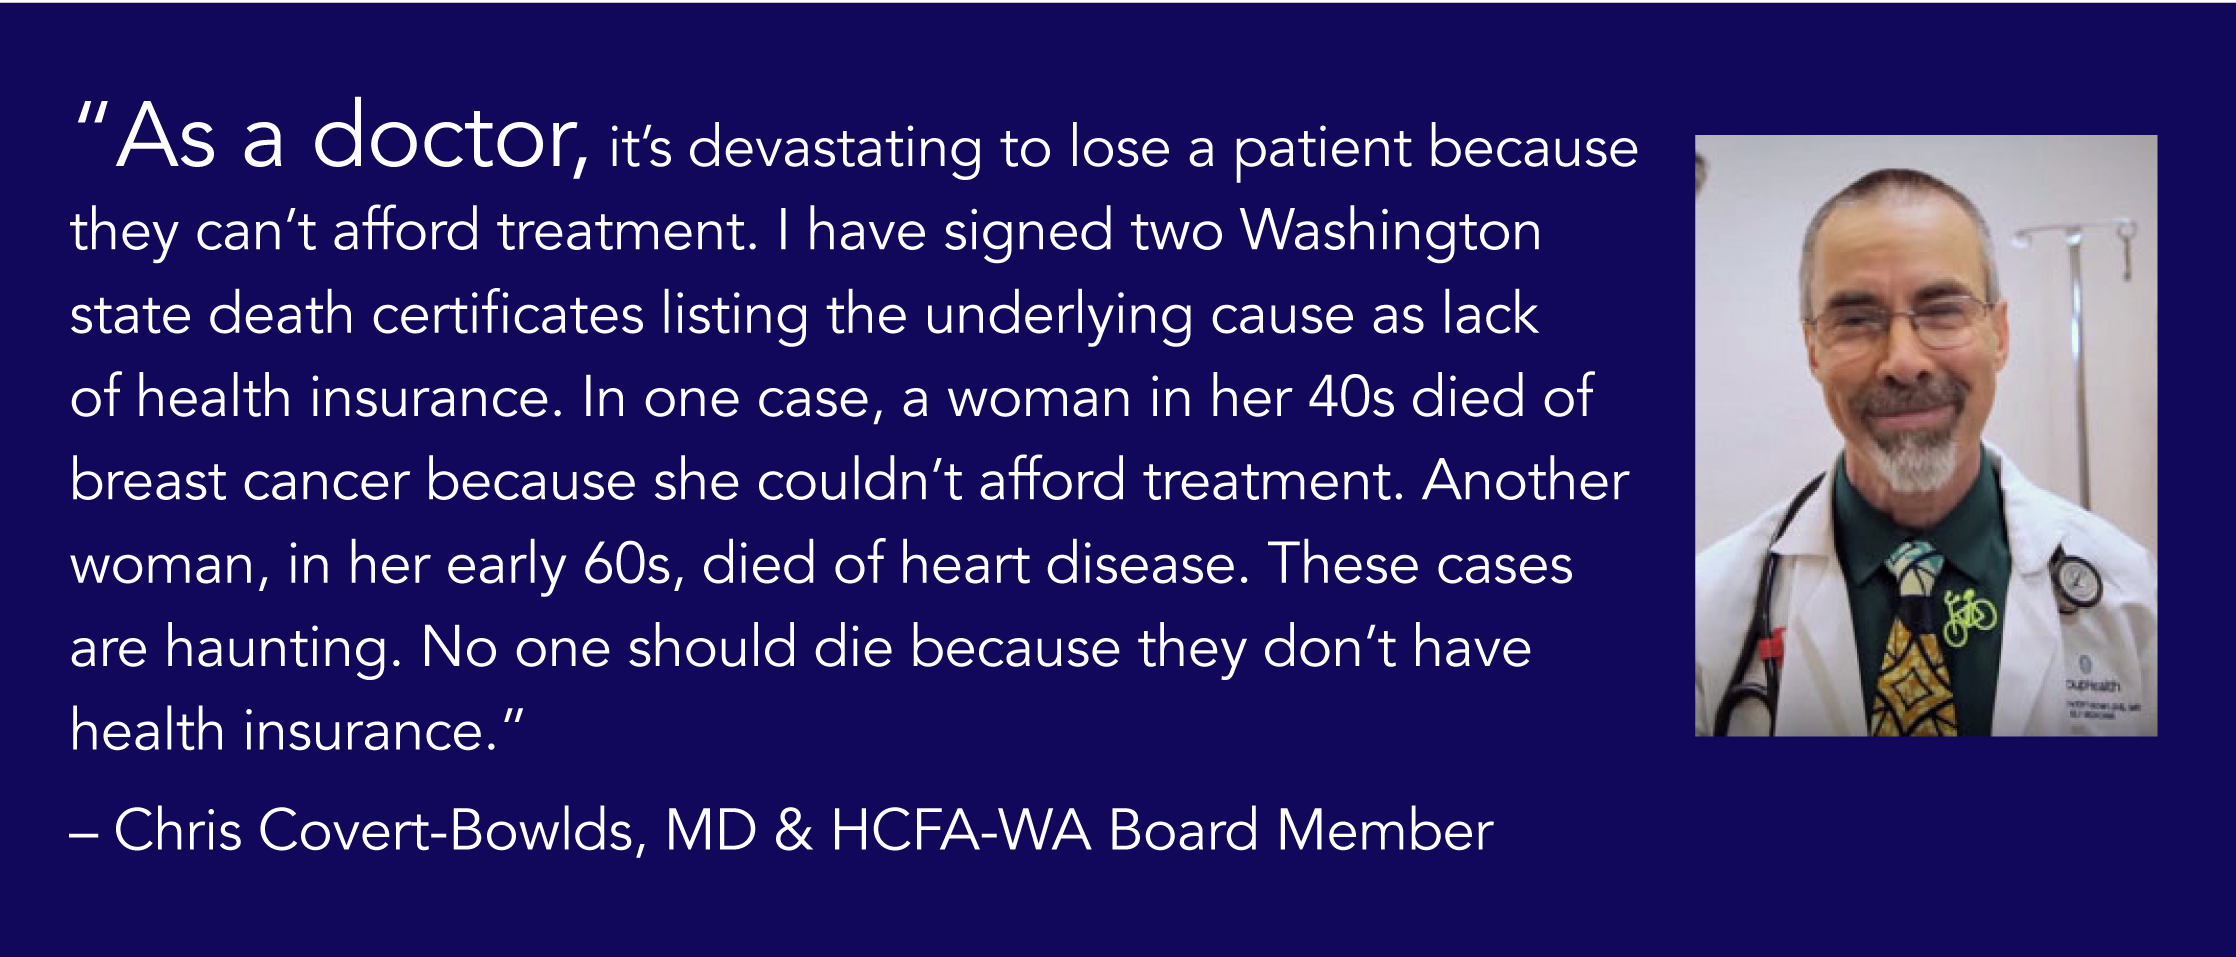 """As a doctor, it's devastating to lose a patient because they can't afford treatment. I have signed two Washington state death certificates listing the underlying cause as a lack of health insurance. In one case, a woman in her 40s died of breast cancer because she couldn't afford treatment. Another woman, in her early 60s, died of heart disease. These cases are haunting. No one should die because they don't have health insurance."" -Chris Covert-Bowlds, MD & HCFA-WA Board Member"